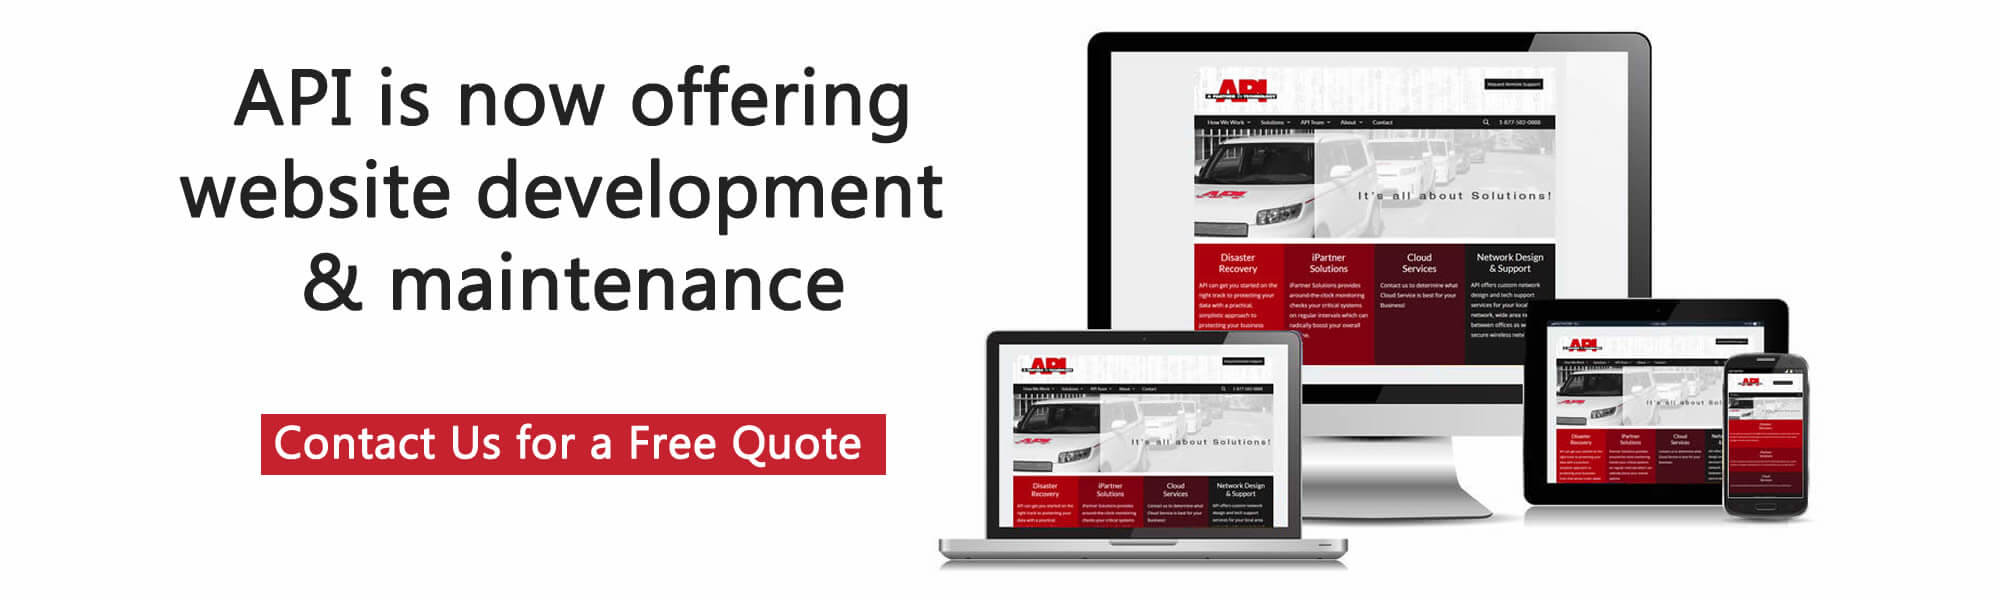 API Technology is now offering website development and maintenance.